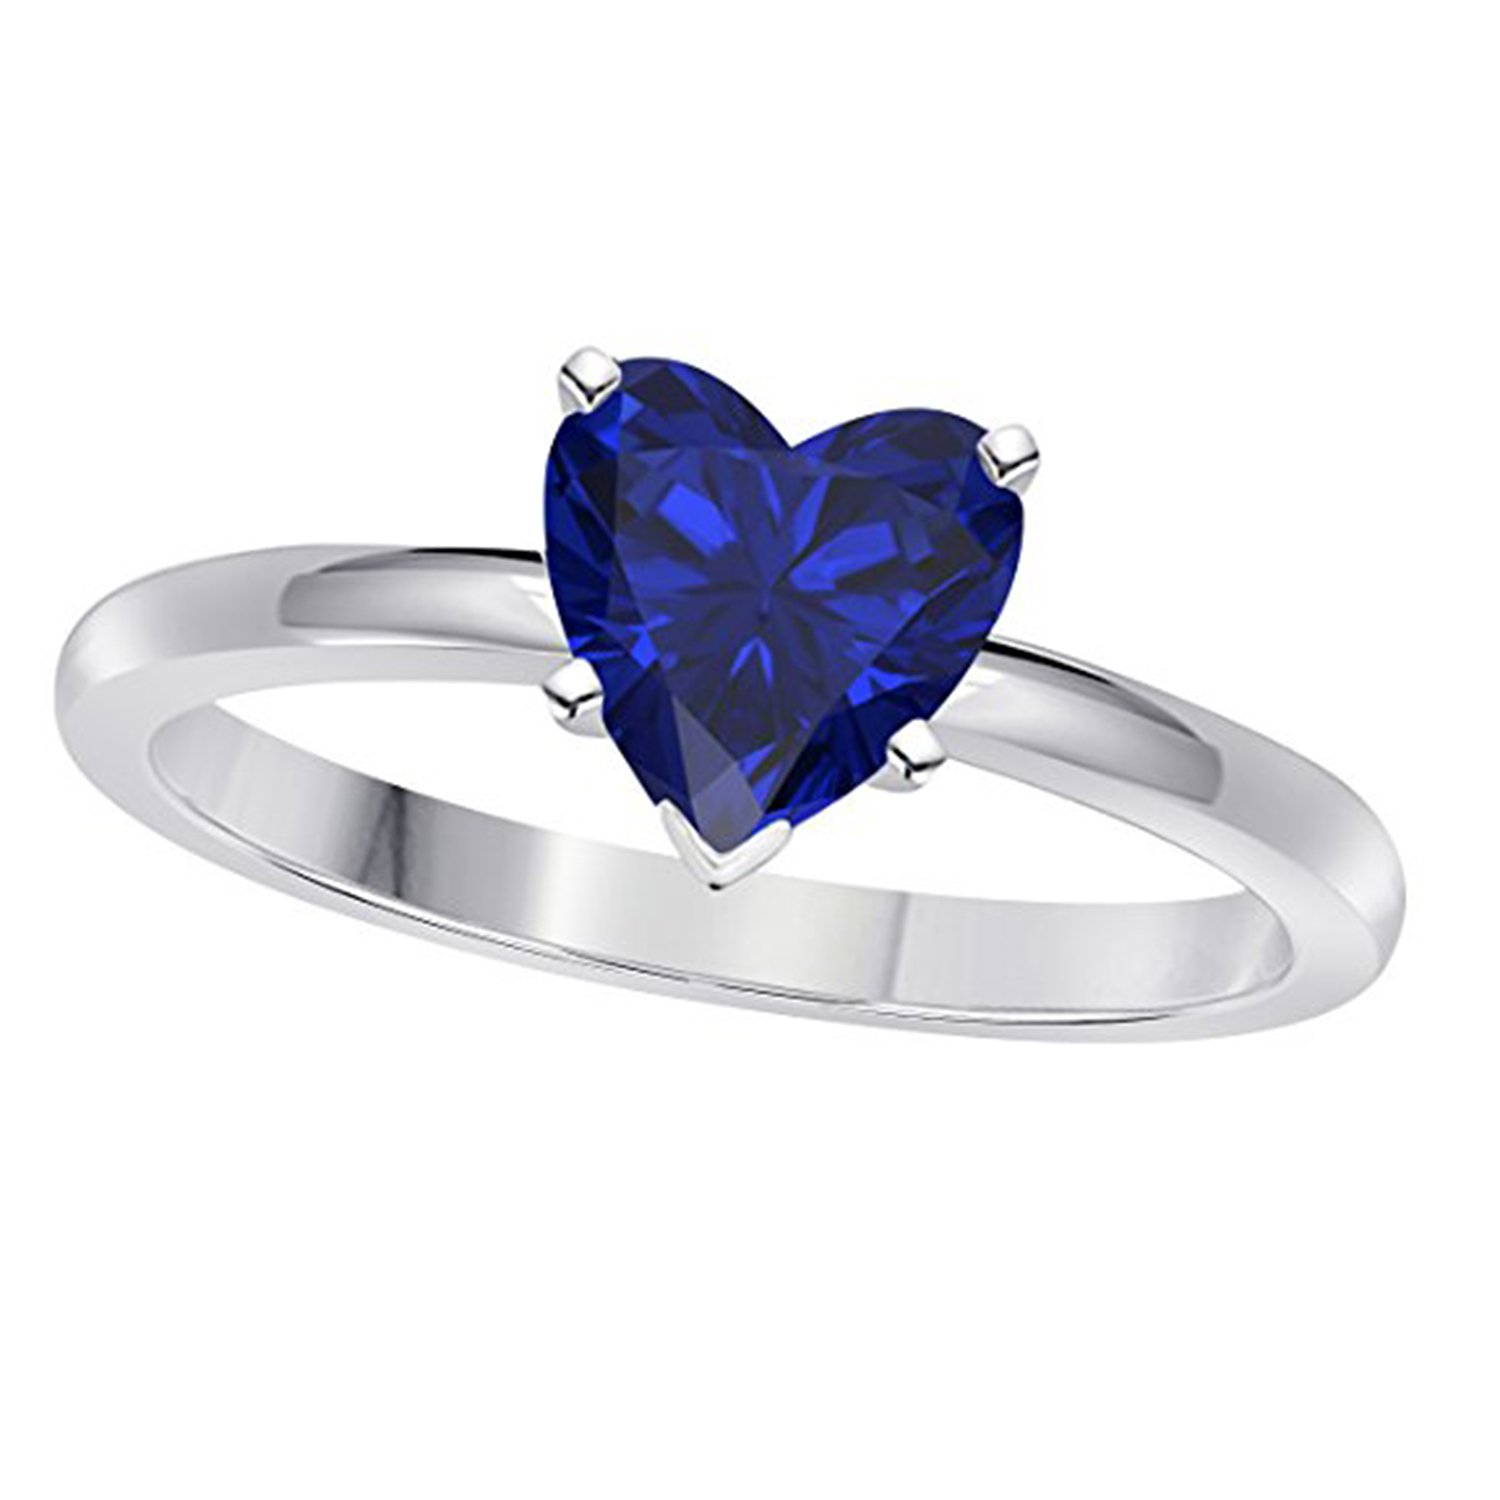 Suhana Jewellery 14K White Gold Fn Alloy Heart Shape Blue /& Simulated Diamond Studded Engagement Wedding Ring